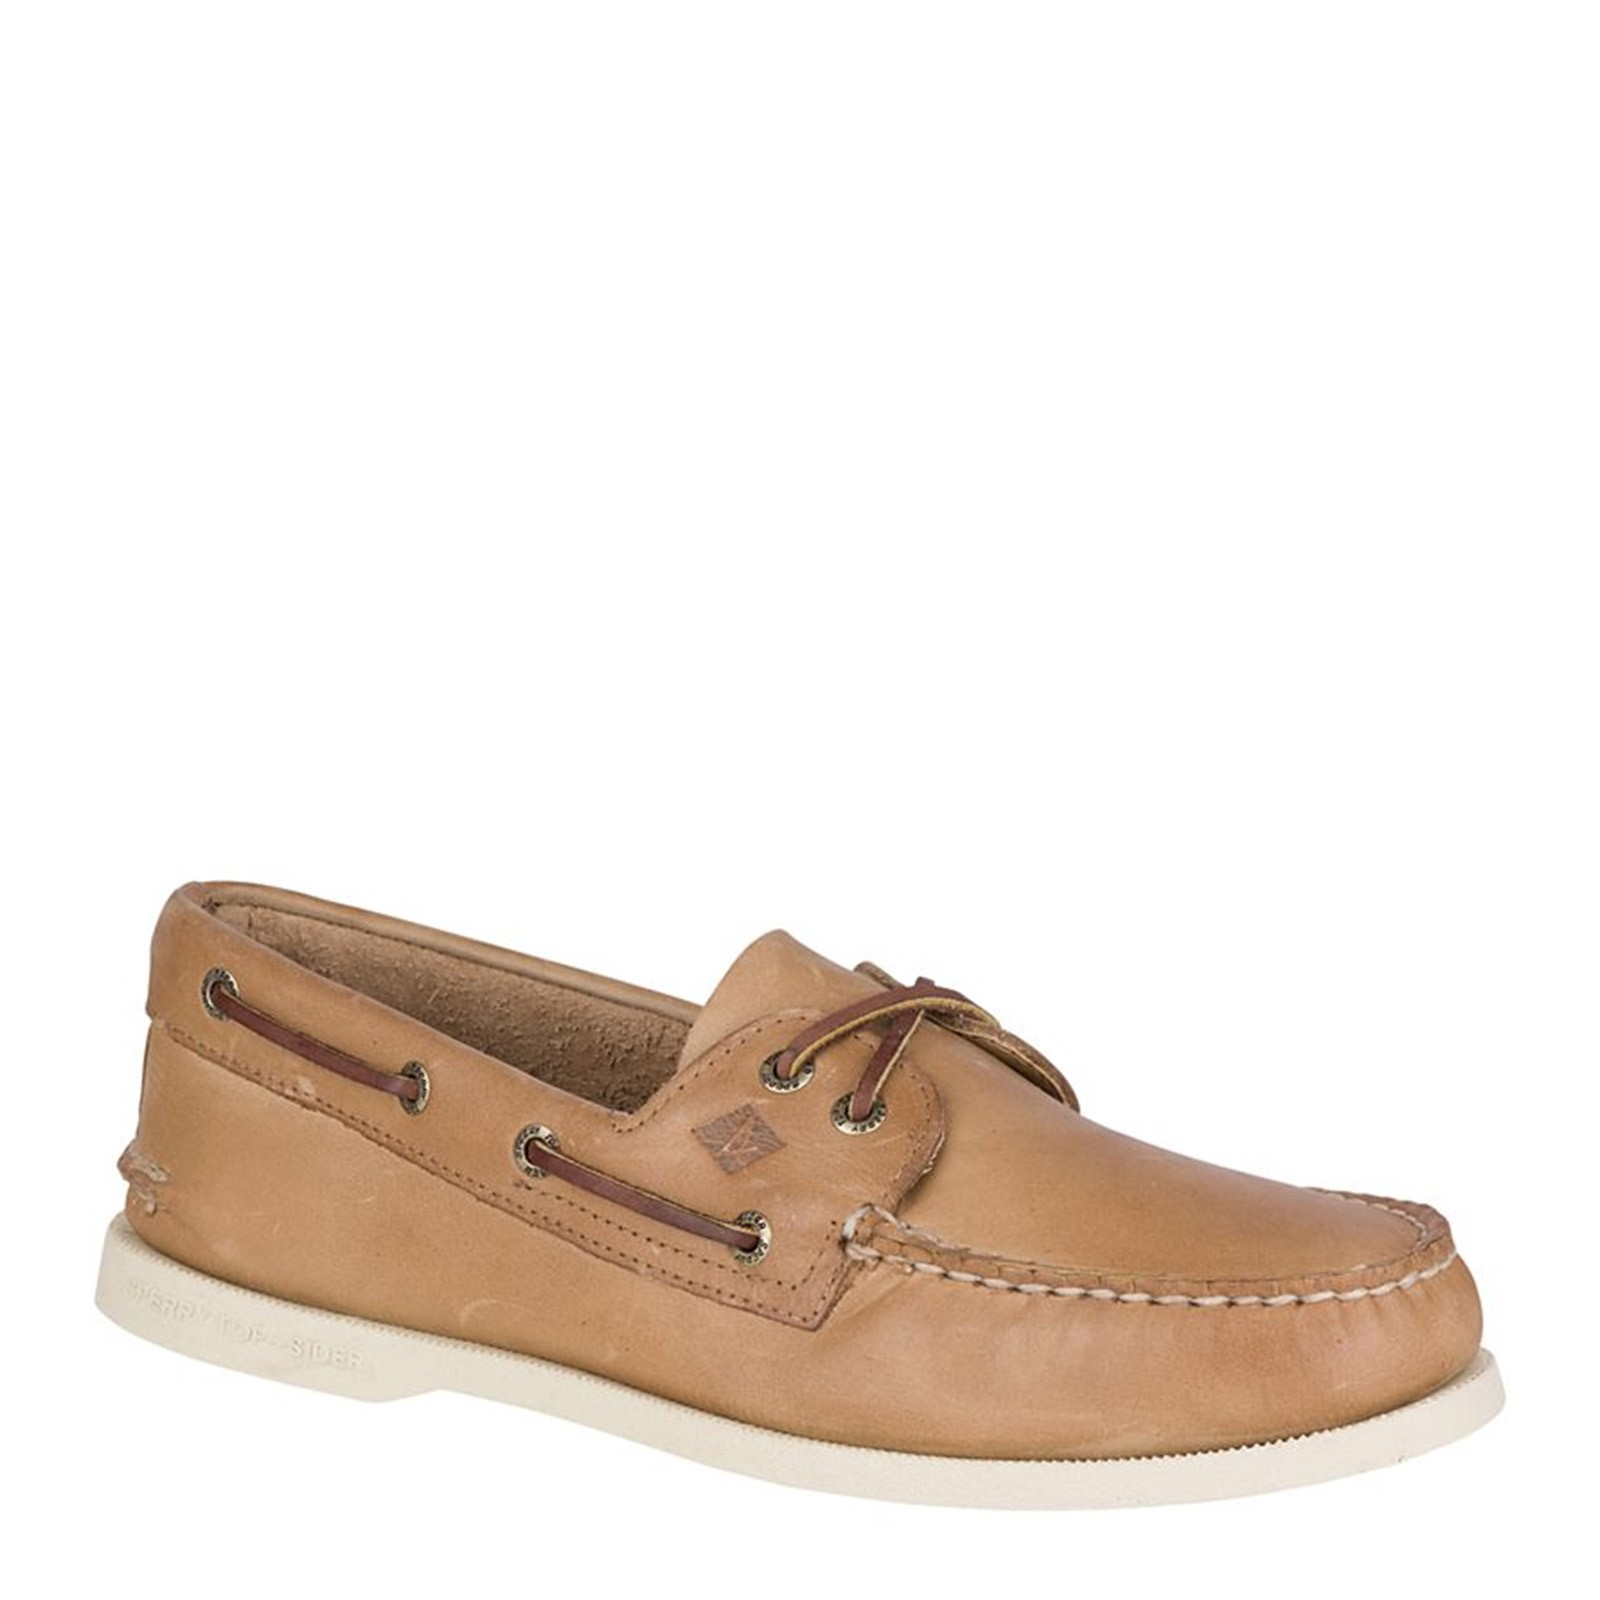 Men's Sperry Topsider, Authentic Original Boat Shoe